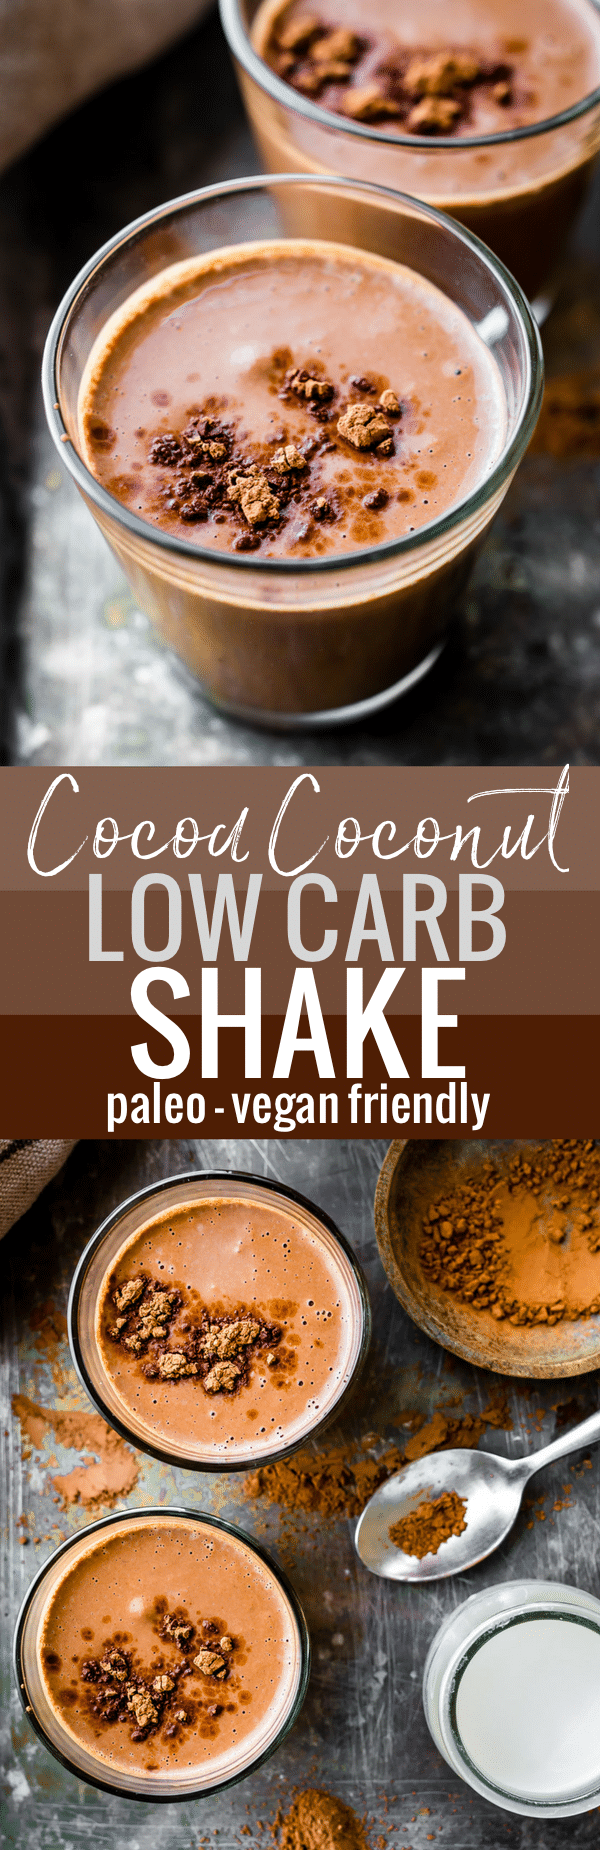 This low carb shake recipe, full of healthy coconut cream and unsweetened chocolate cocoa, will fuel your body for the day! The health benefits of this delicious vegan friendly, paleo shake recipe will keep you energized and nourished. WWW.COTTERCRUNCH.COM